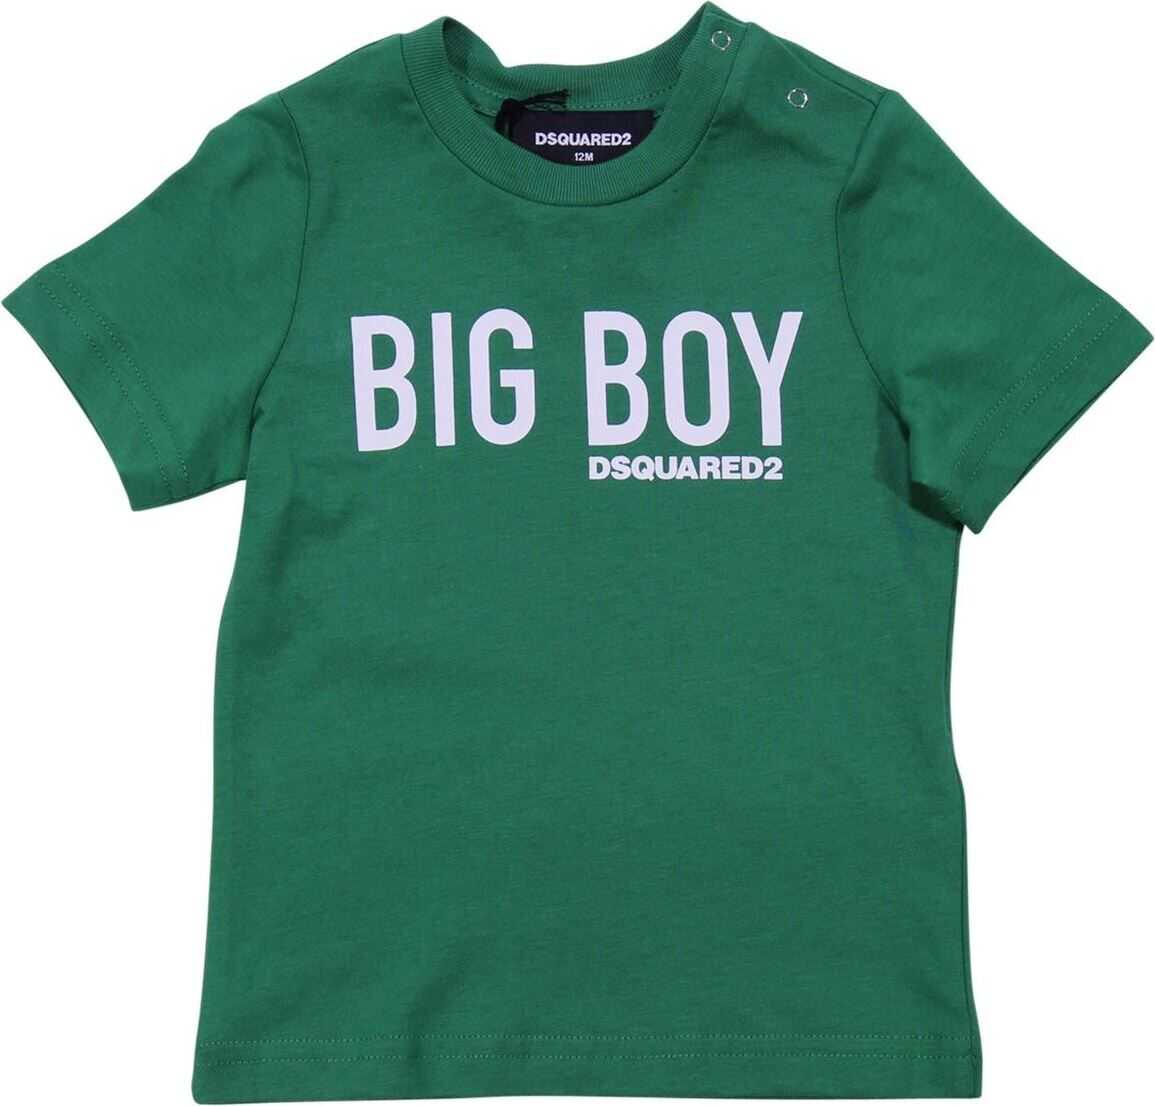 Green Big Boy Printed T-Shirt